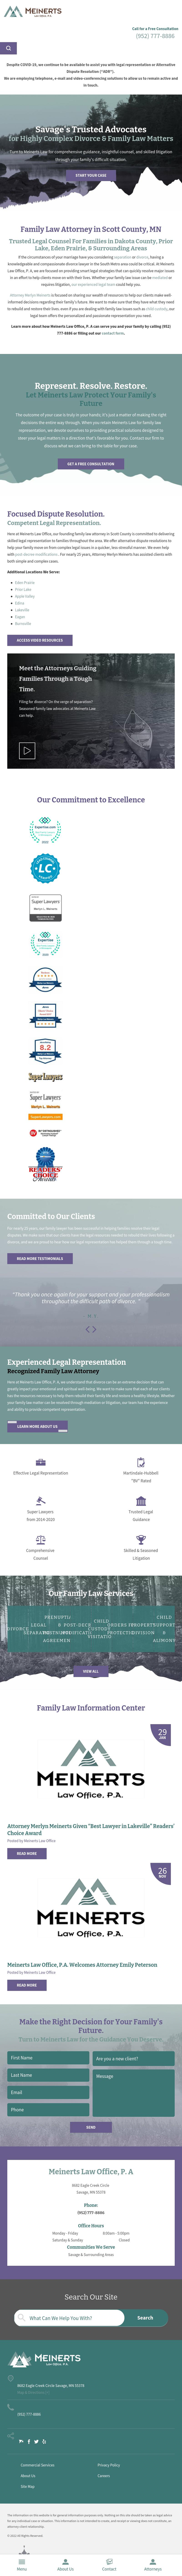 Meinerts Law Office, P.A. - Burnsville MN Lawyers